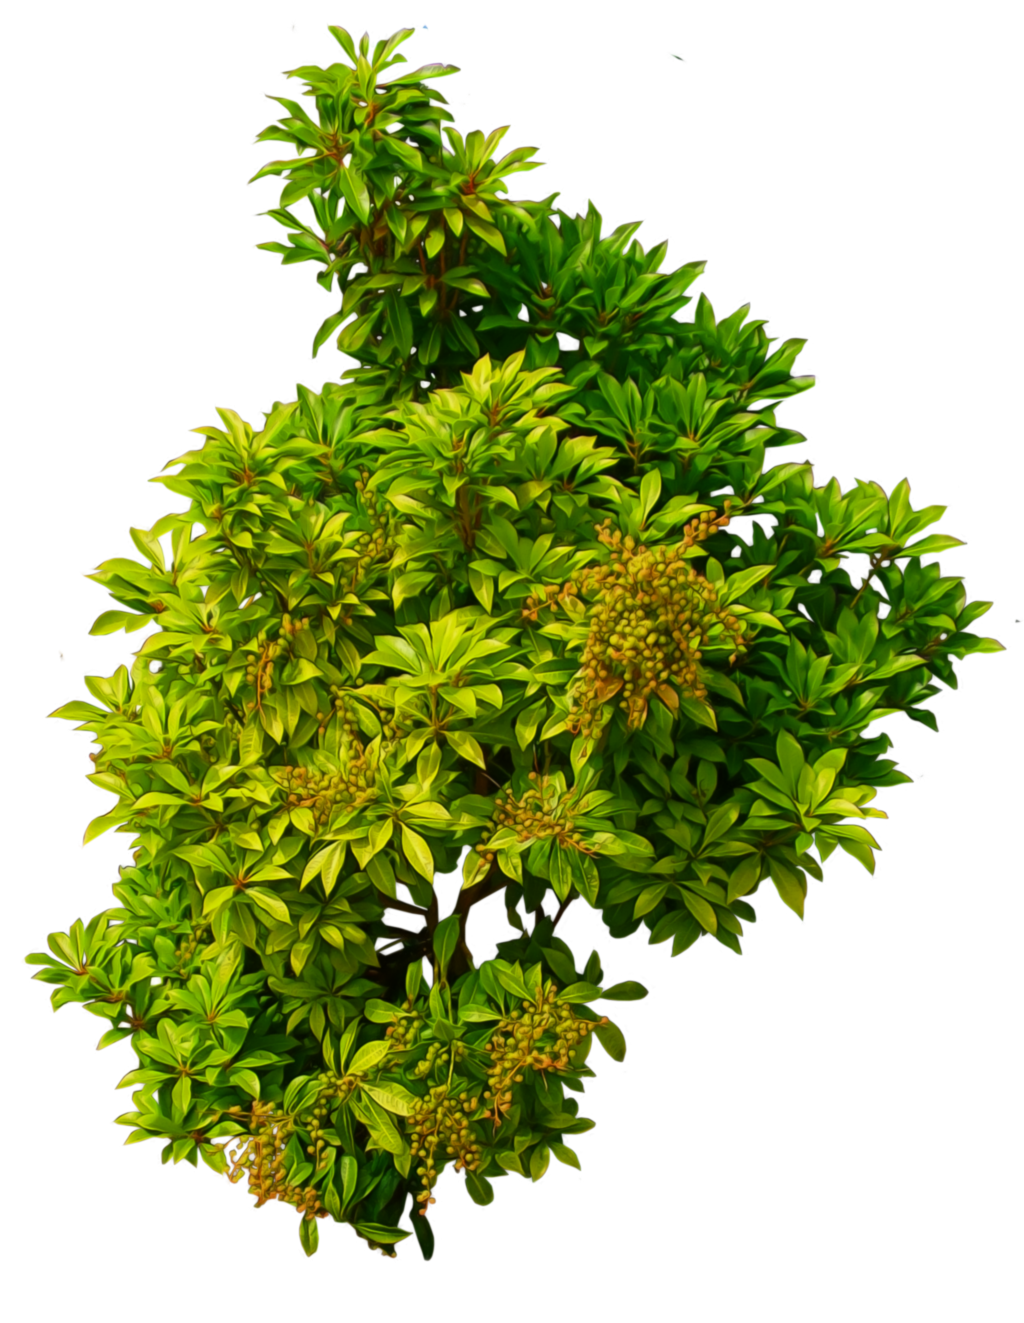 Bushes plan view png. Shrub by alz stock